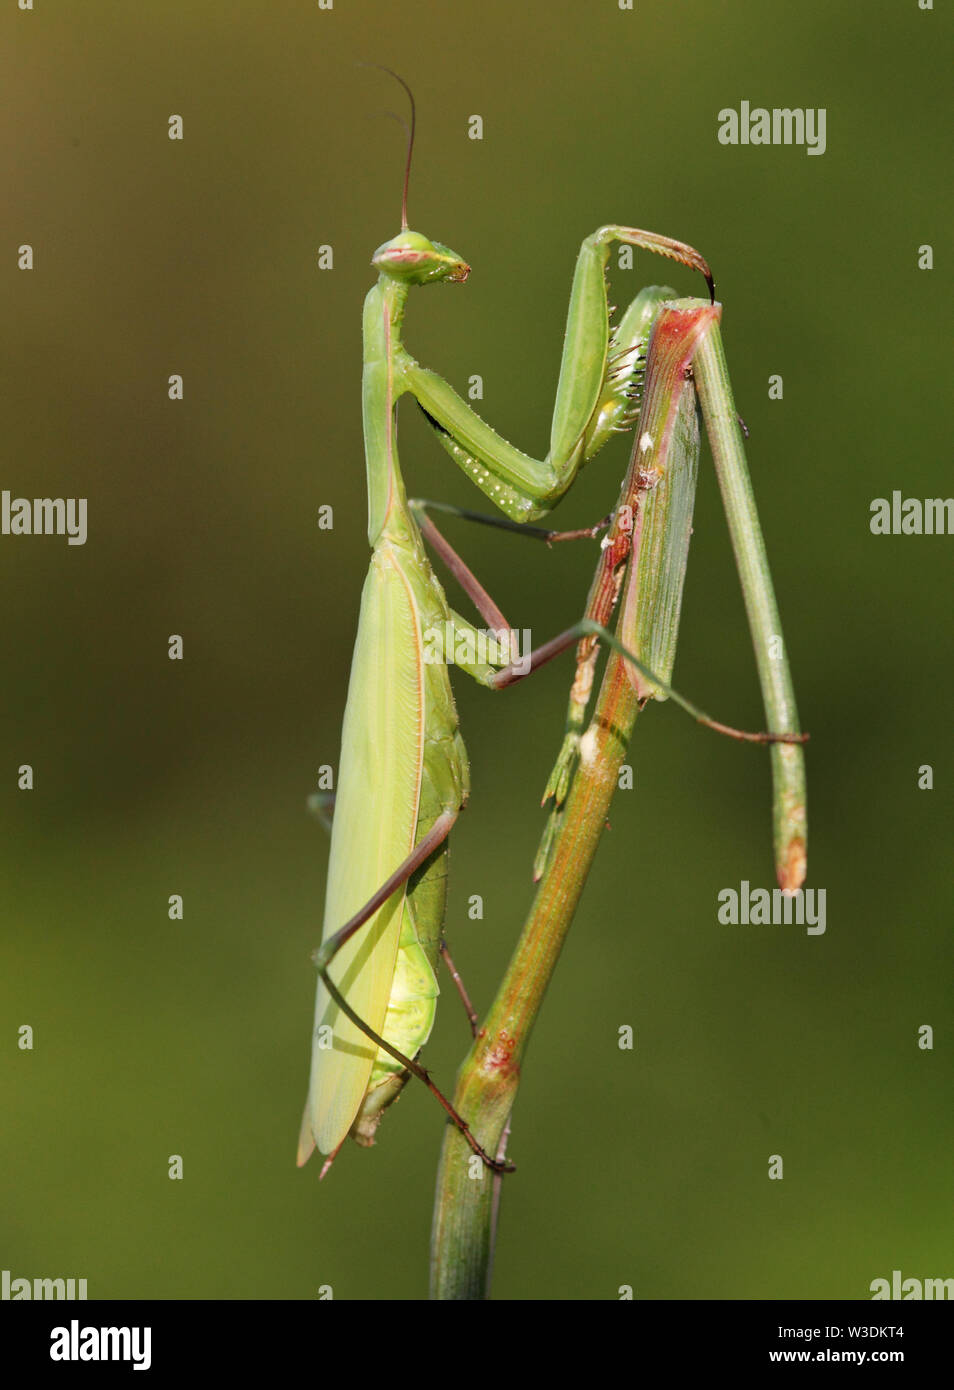 Praying Mantis insect in nature Stock Photo